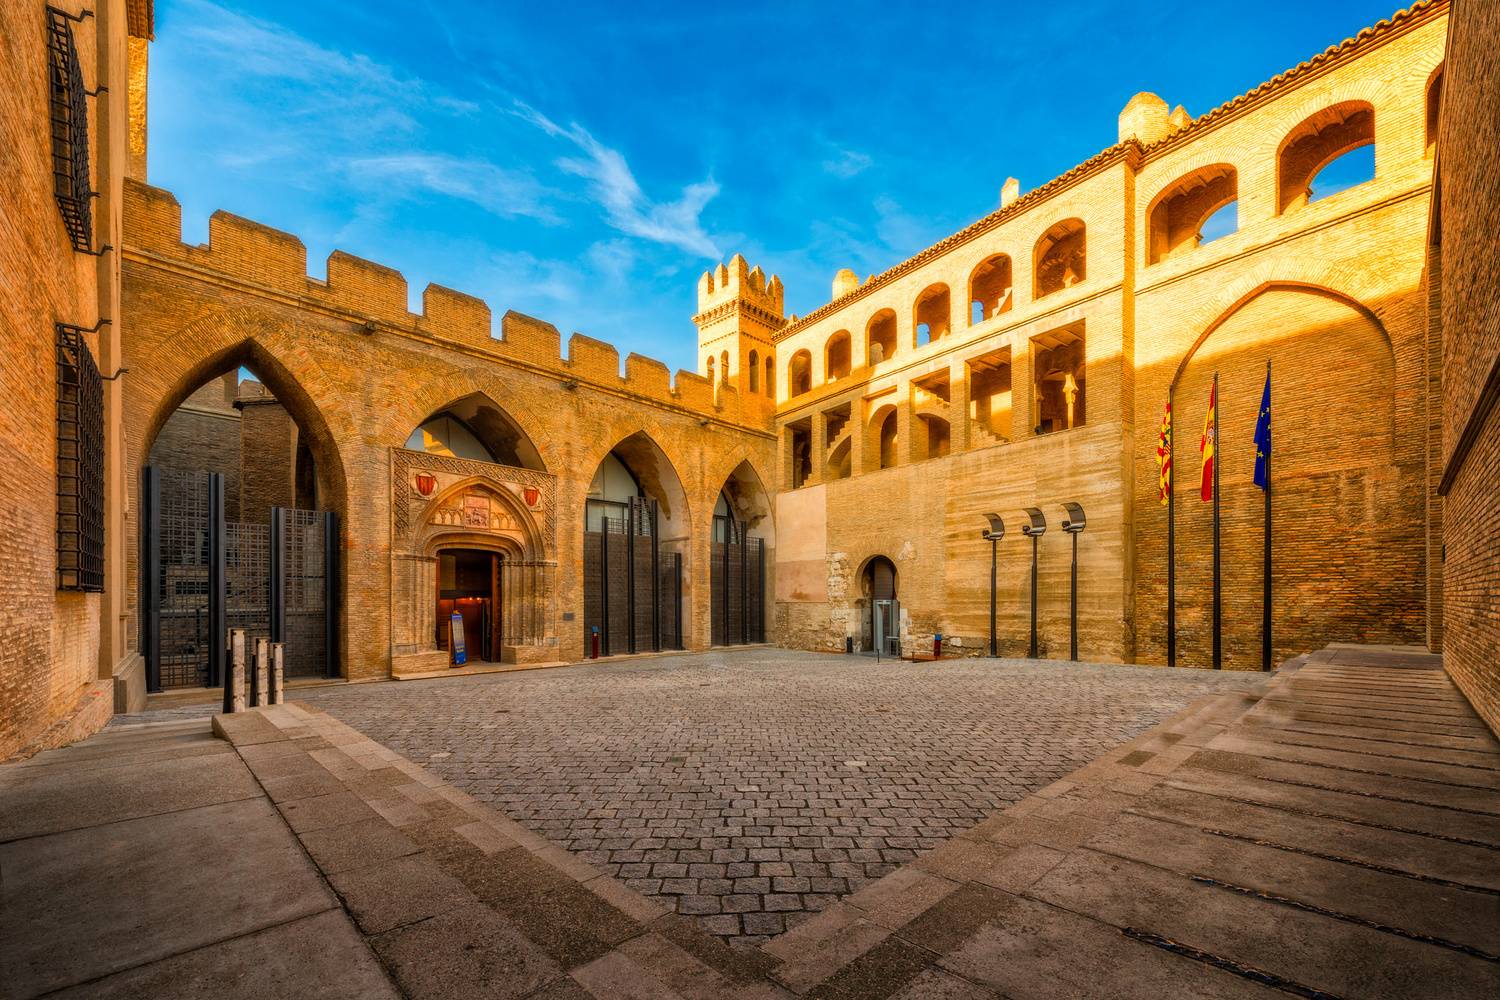 Patio de San Martin and Aljaferia Palace | Zaragoza, Spain by Nico Trinkhaus